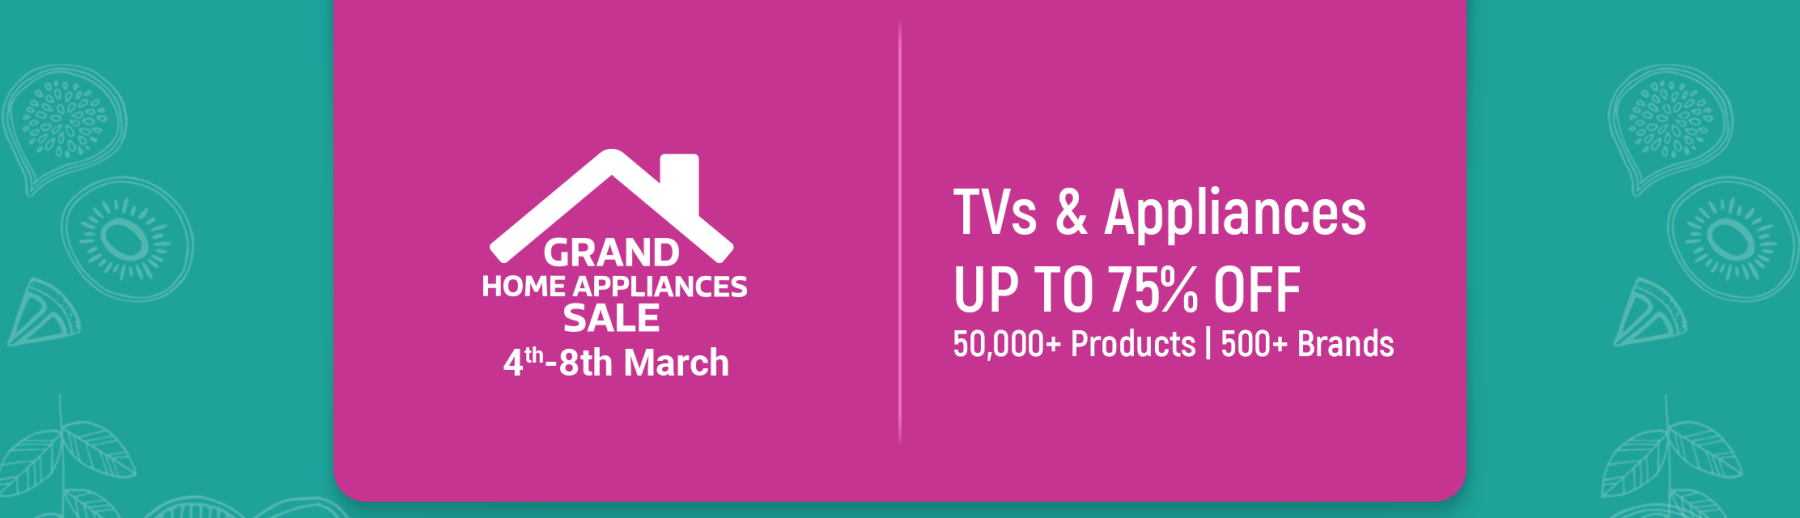 TV & Appliances Sale - Upto 75% OFF